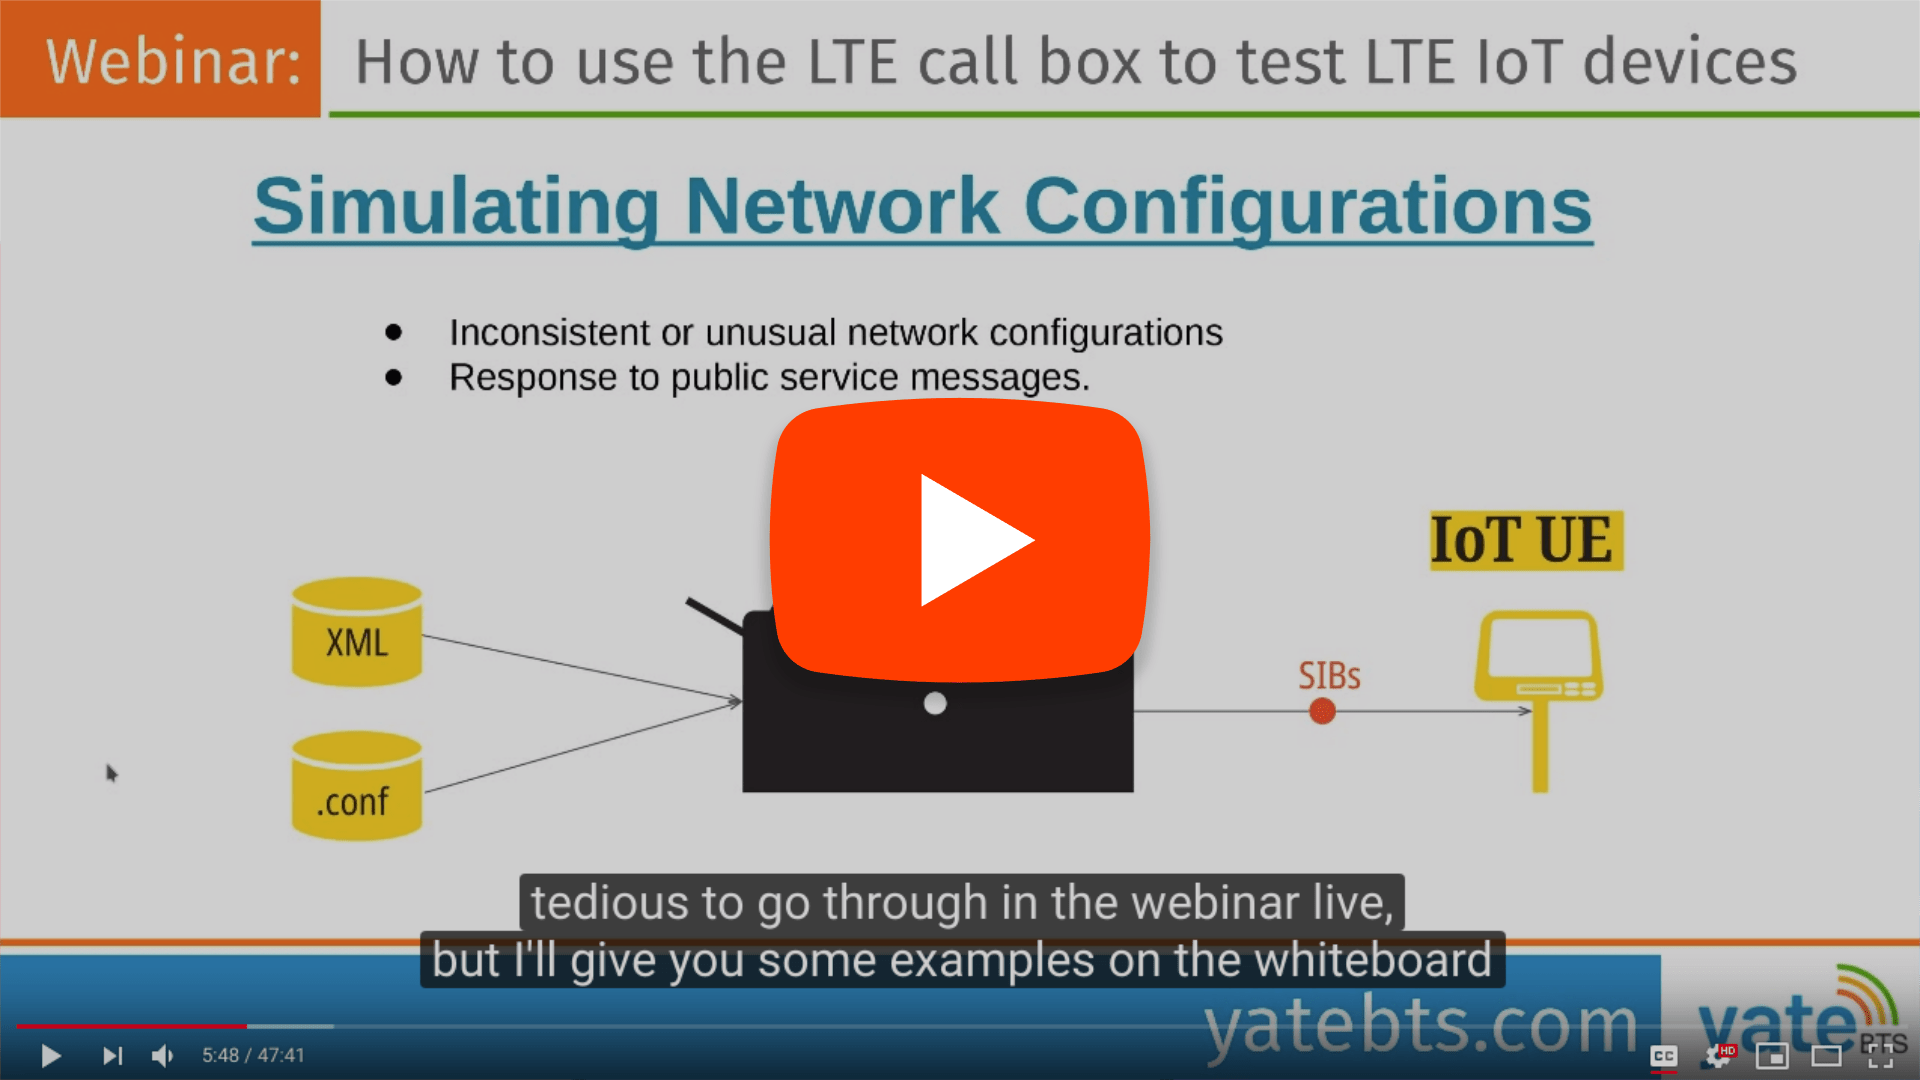 IoT device testing webinar using the LTE Callbox. Real scenarios and IoT testing demo. 2